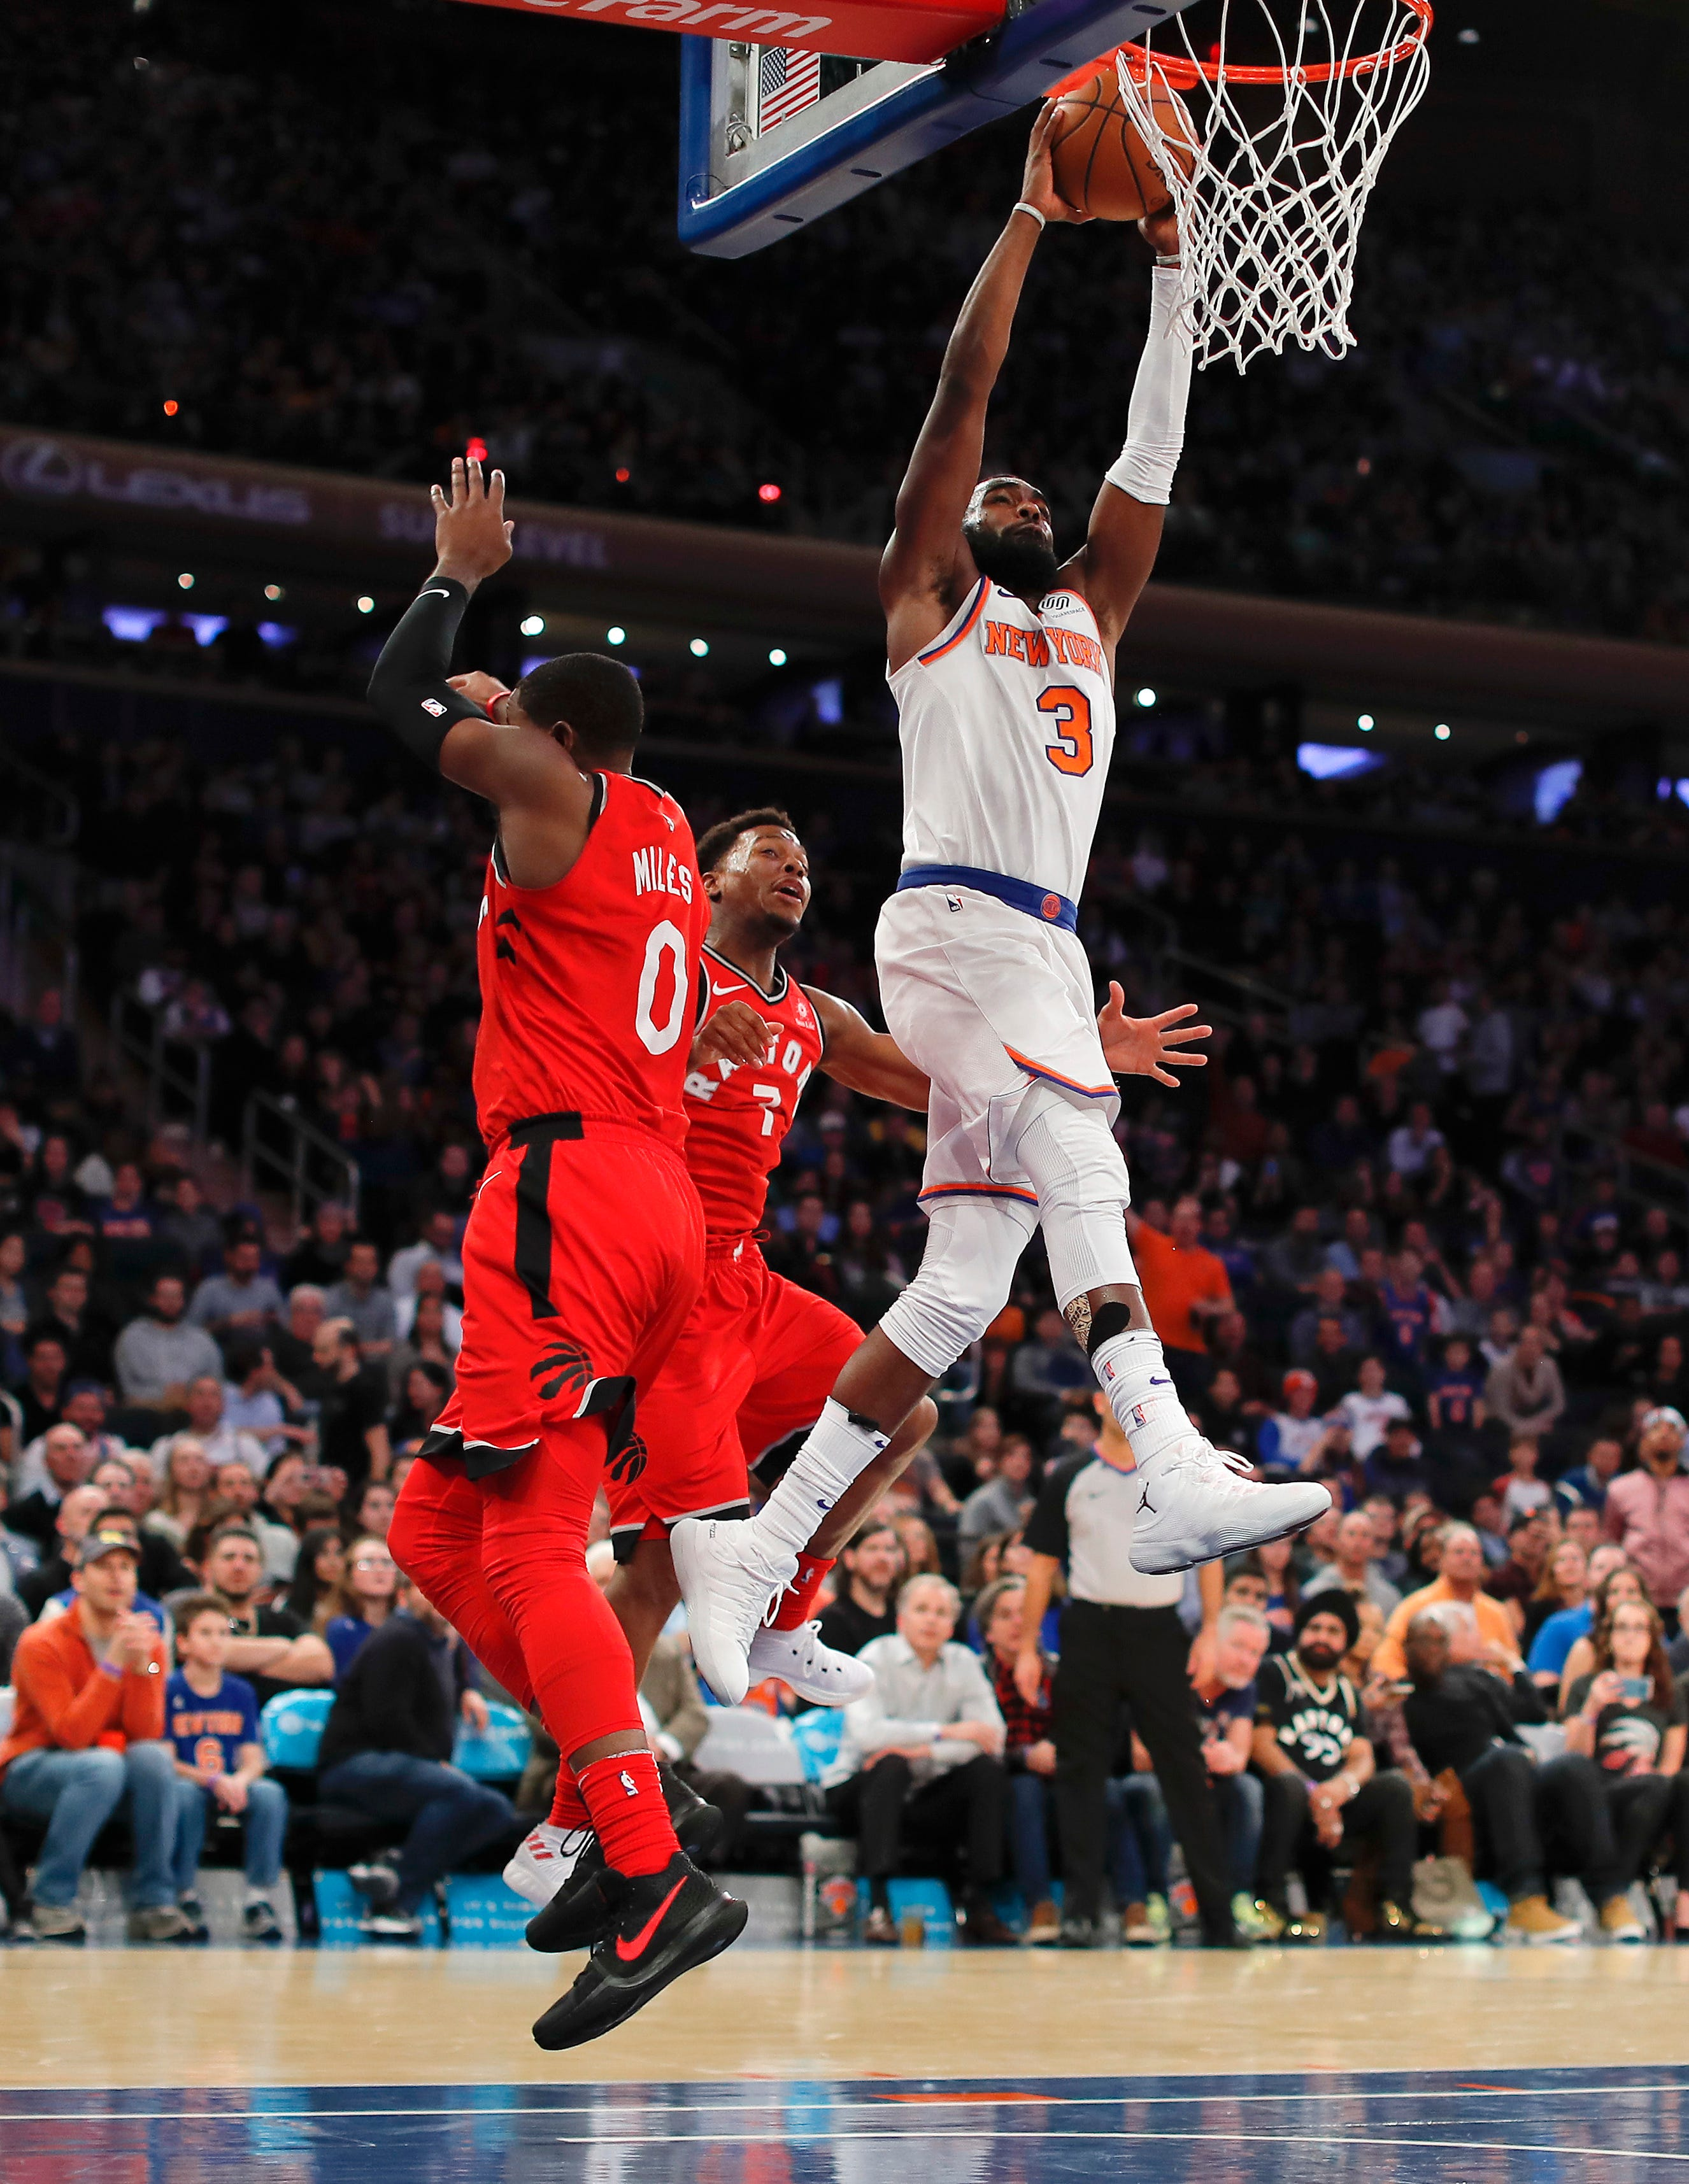 Hardaway scores 38 as Knicks make a run in second half to top Raptors